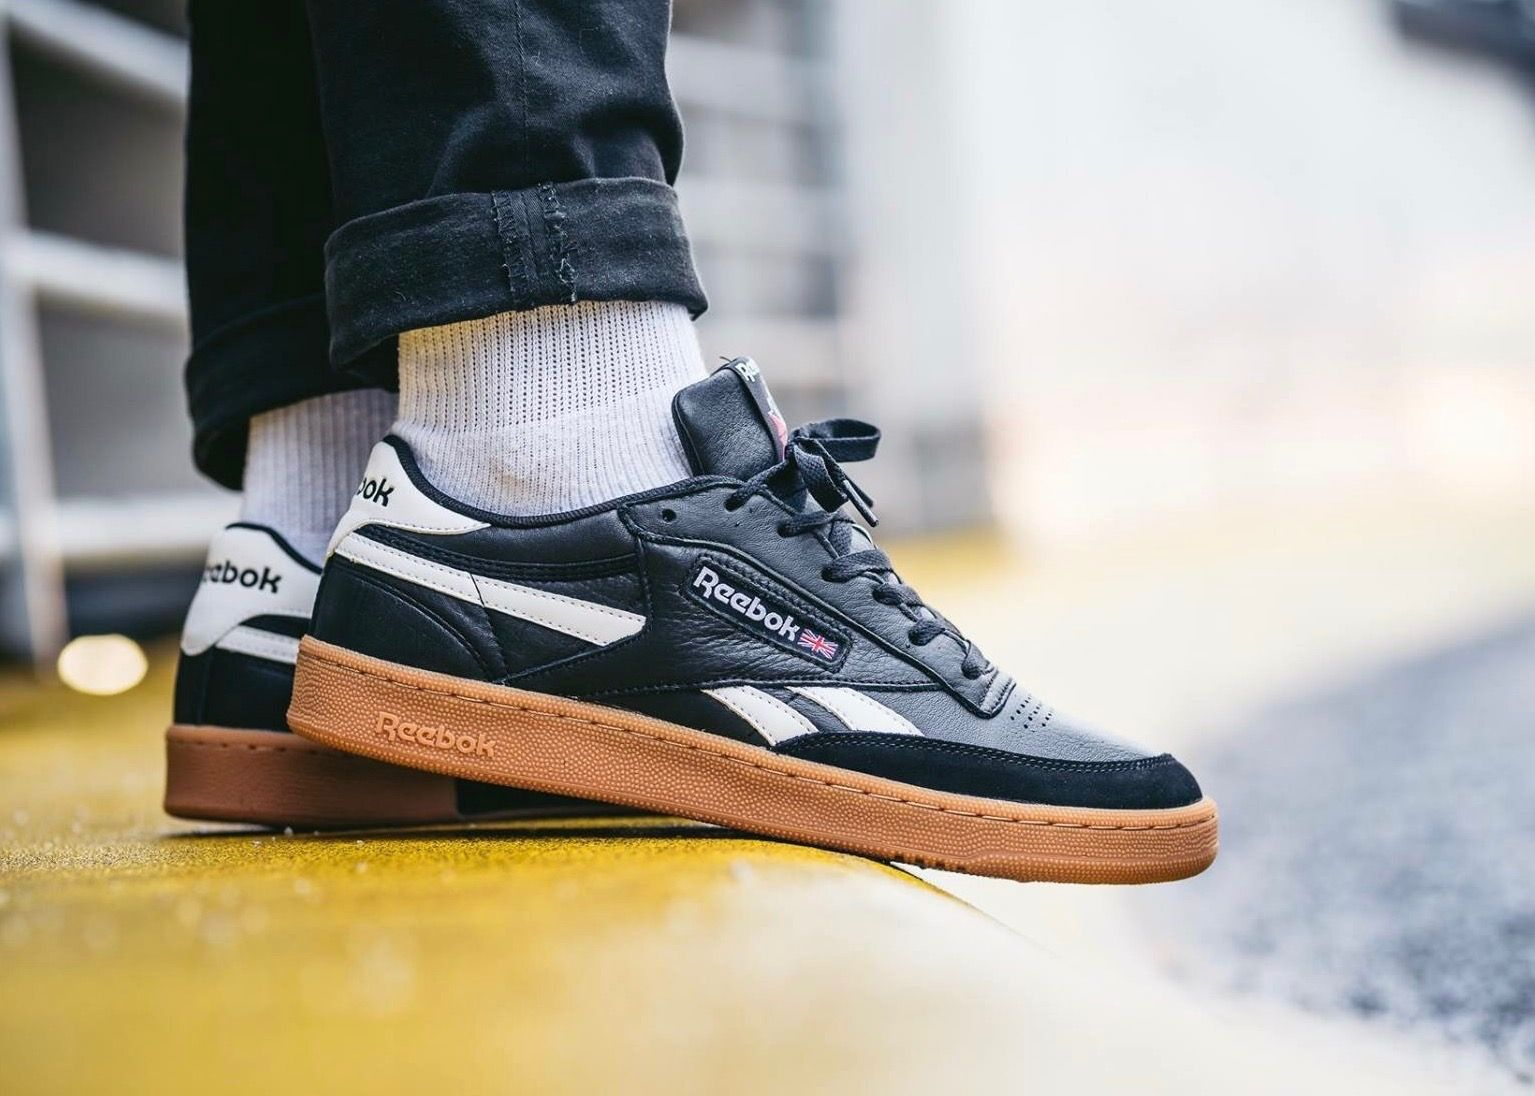 Reebok Club C 85: Black/Gum